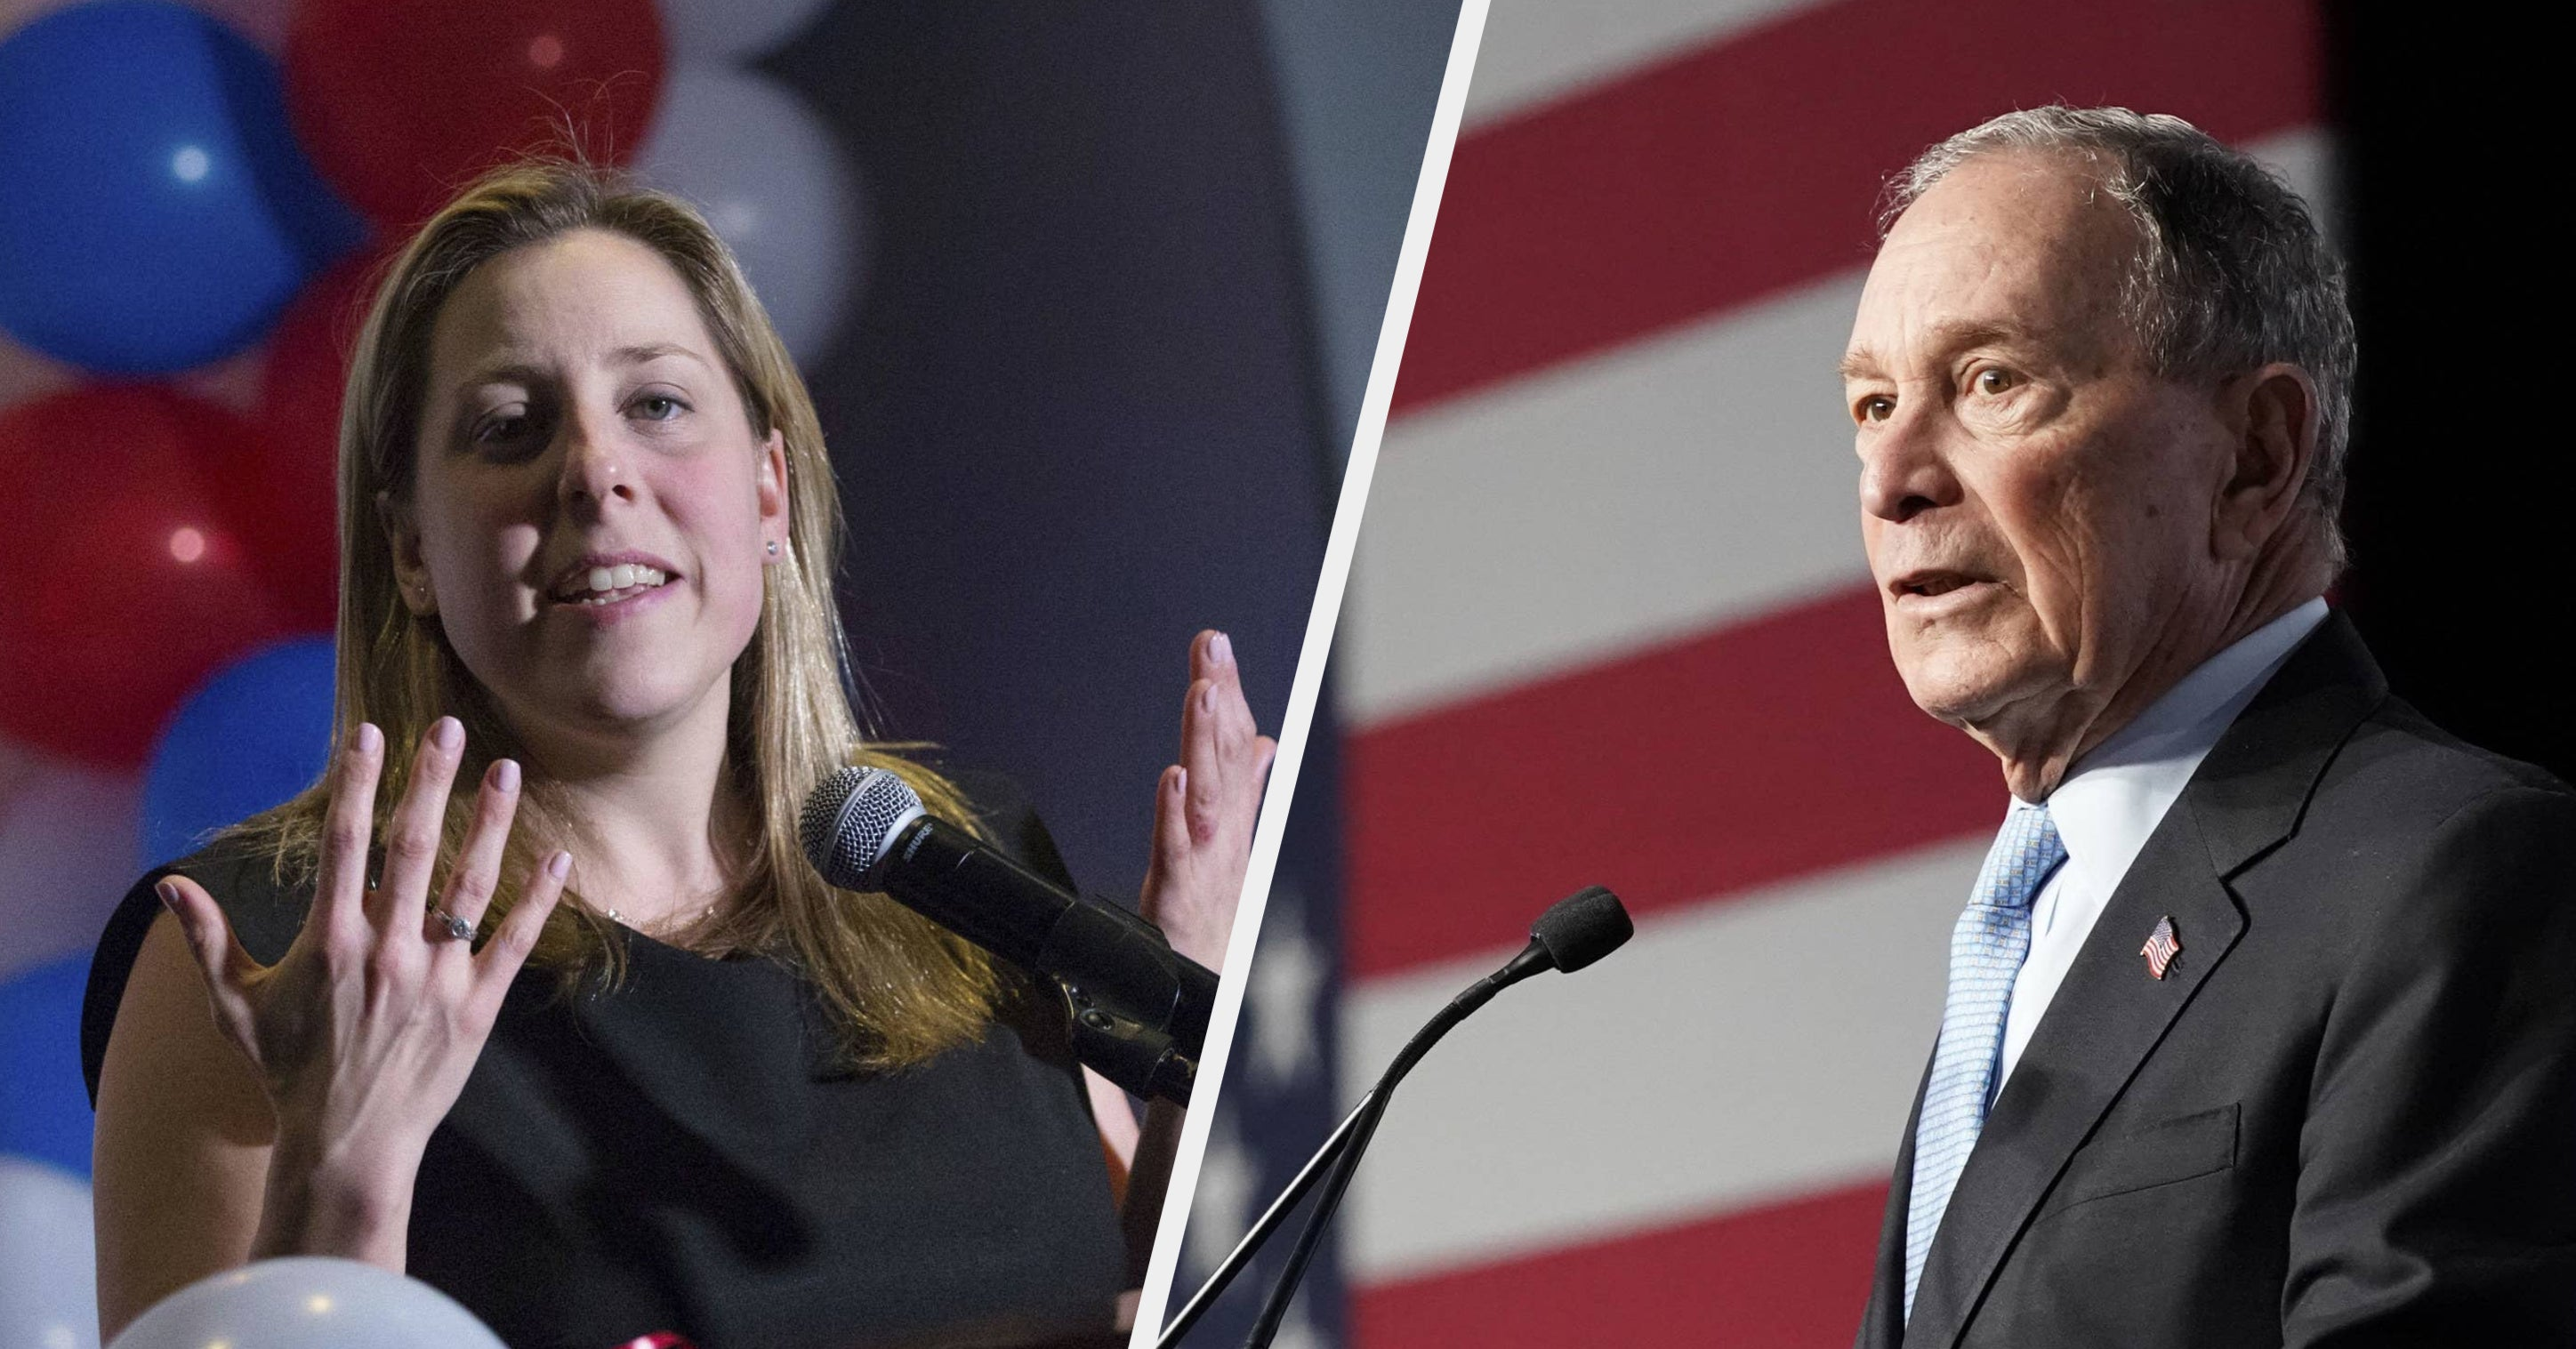 This Democrat Tried To Oust A Republican from Congress. She Blames Mike Bloomberg For Her Loss.